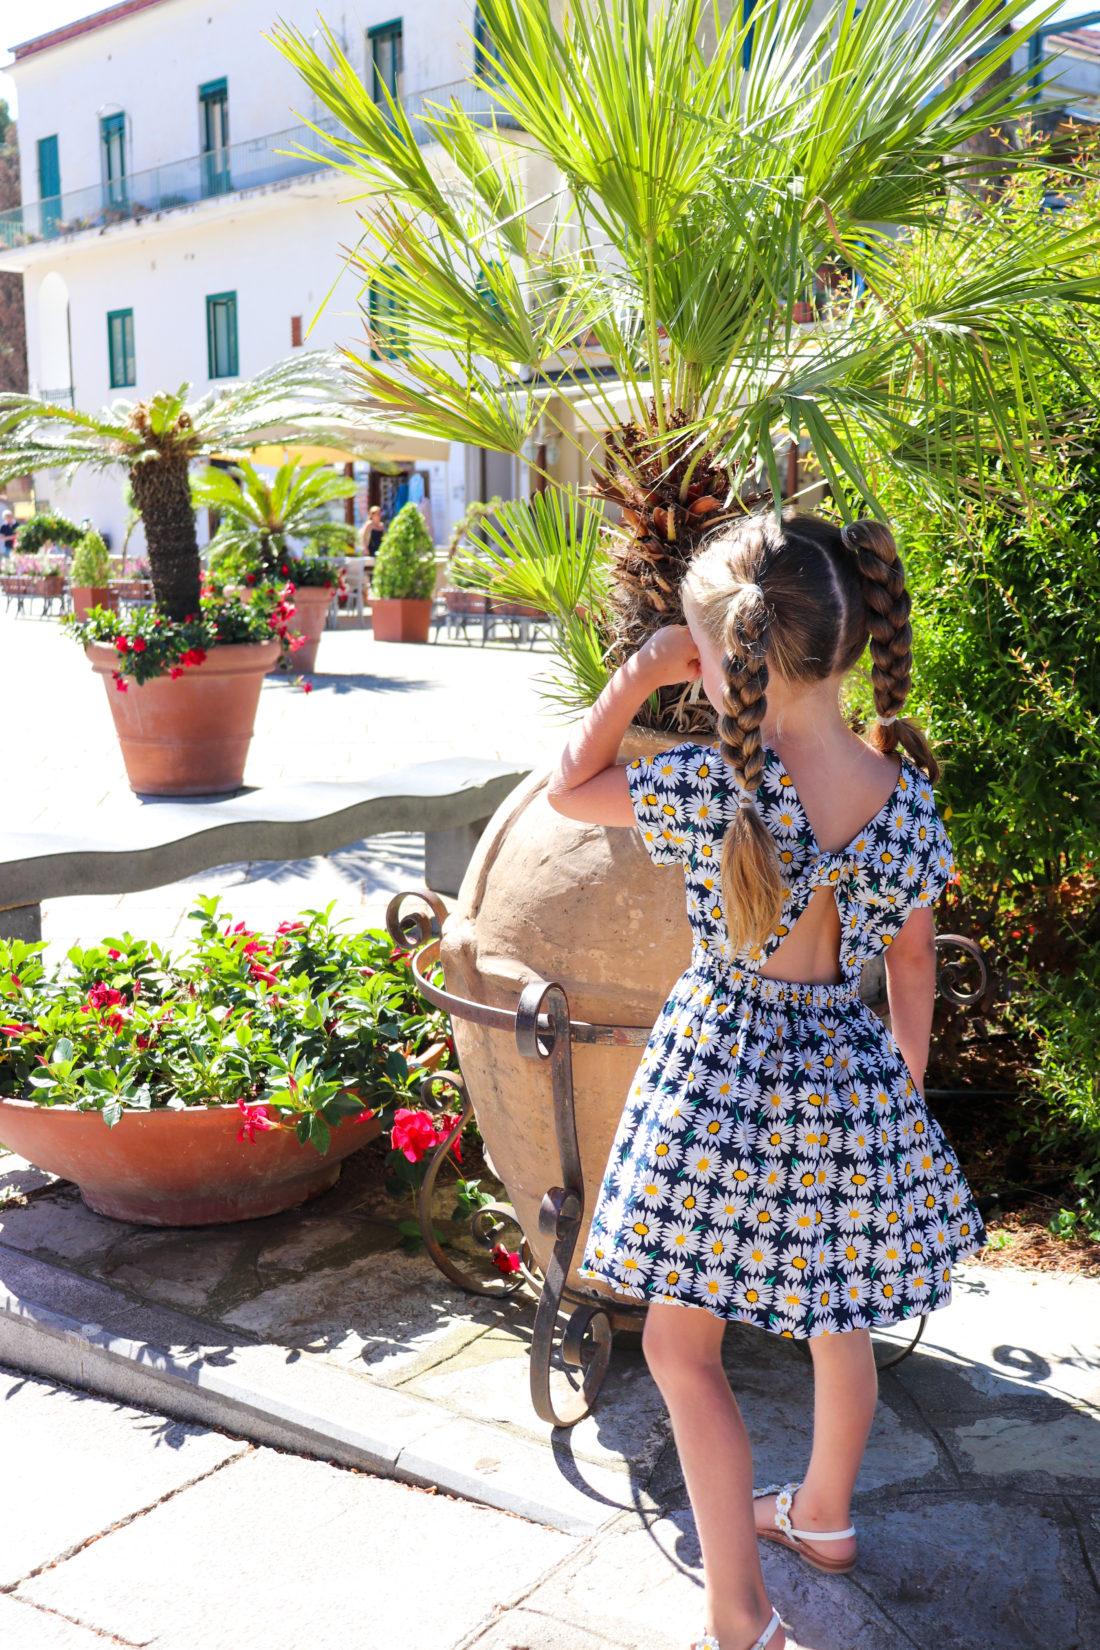 Eva Amurri Martino's daughter Marlowe wears a sunflower sundress in Italy